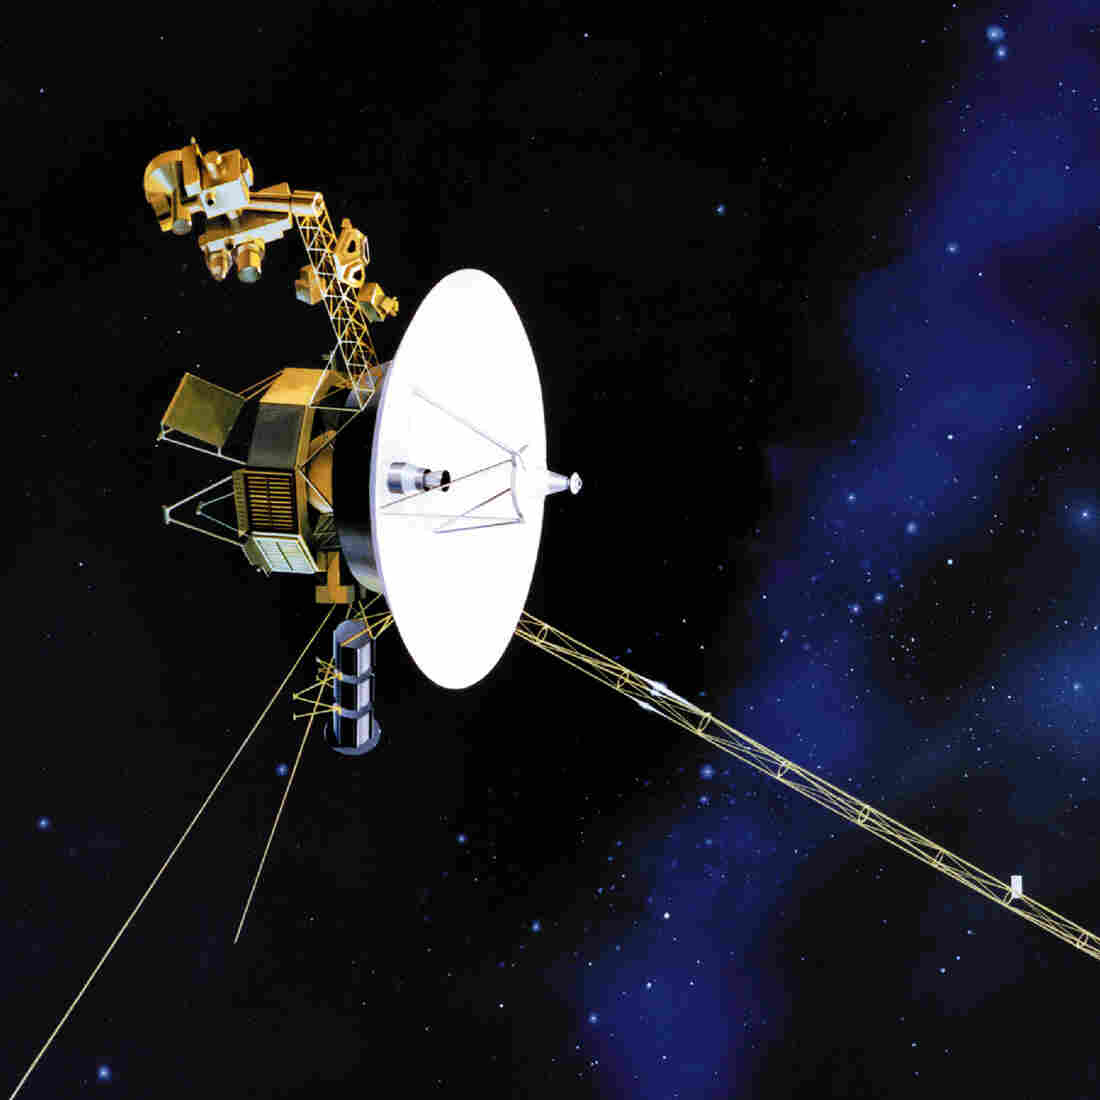 An artist's rendering shows one of NASA's twin Voyager spacecrafts, which launched in 1977.